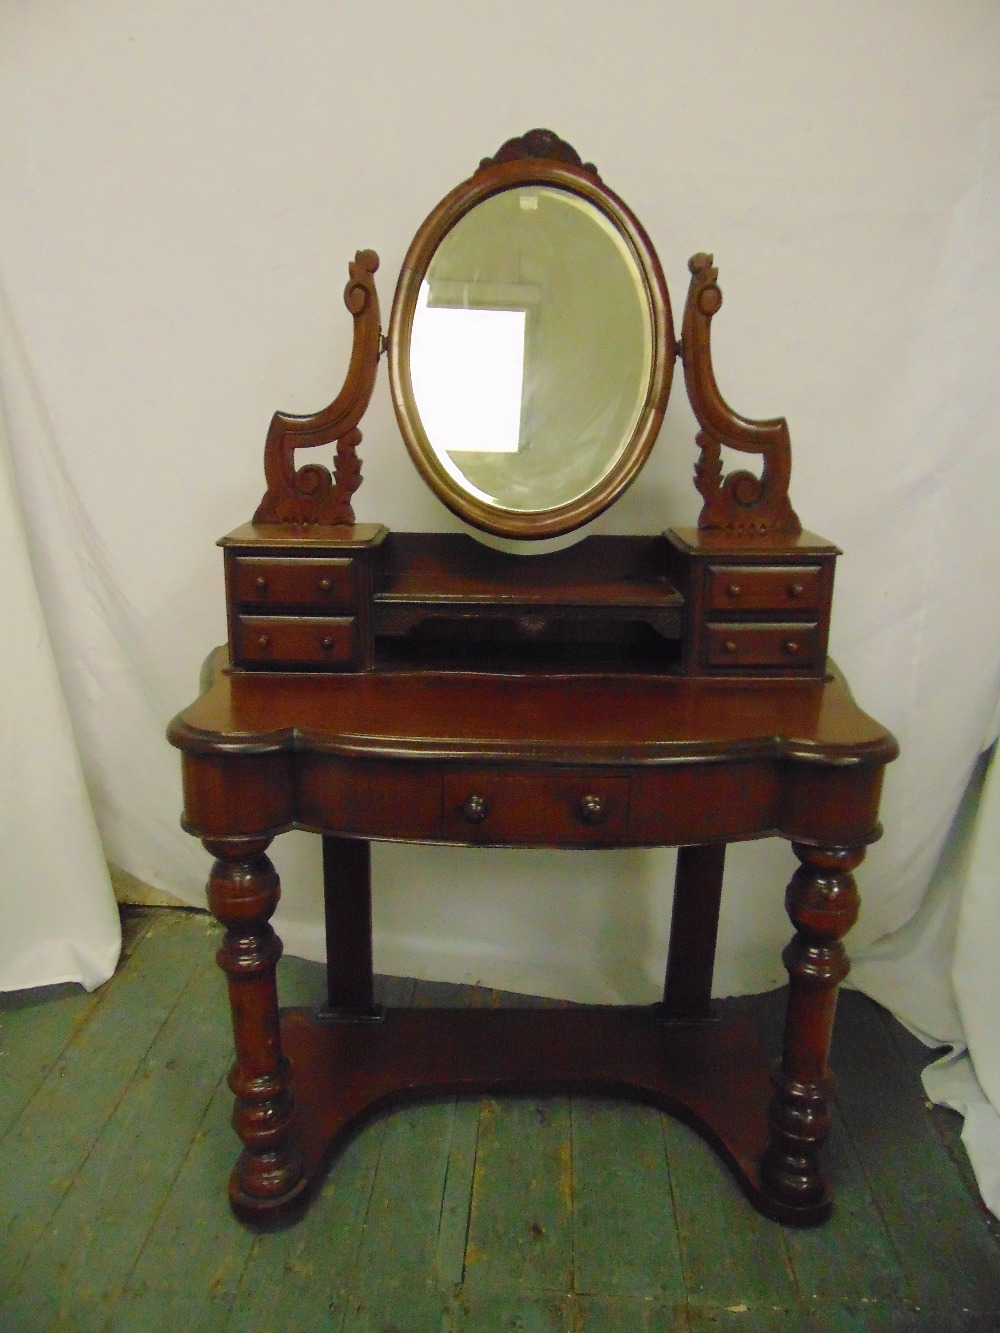 Lot 13 - A Victorian mahogany shaped rectangular dressing table with oval swivel mirror above five drawers on